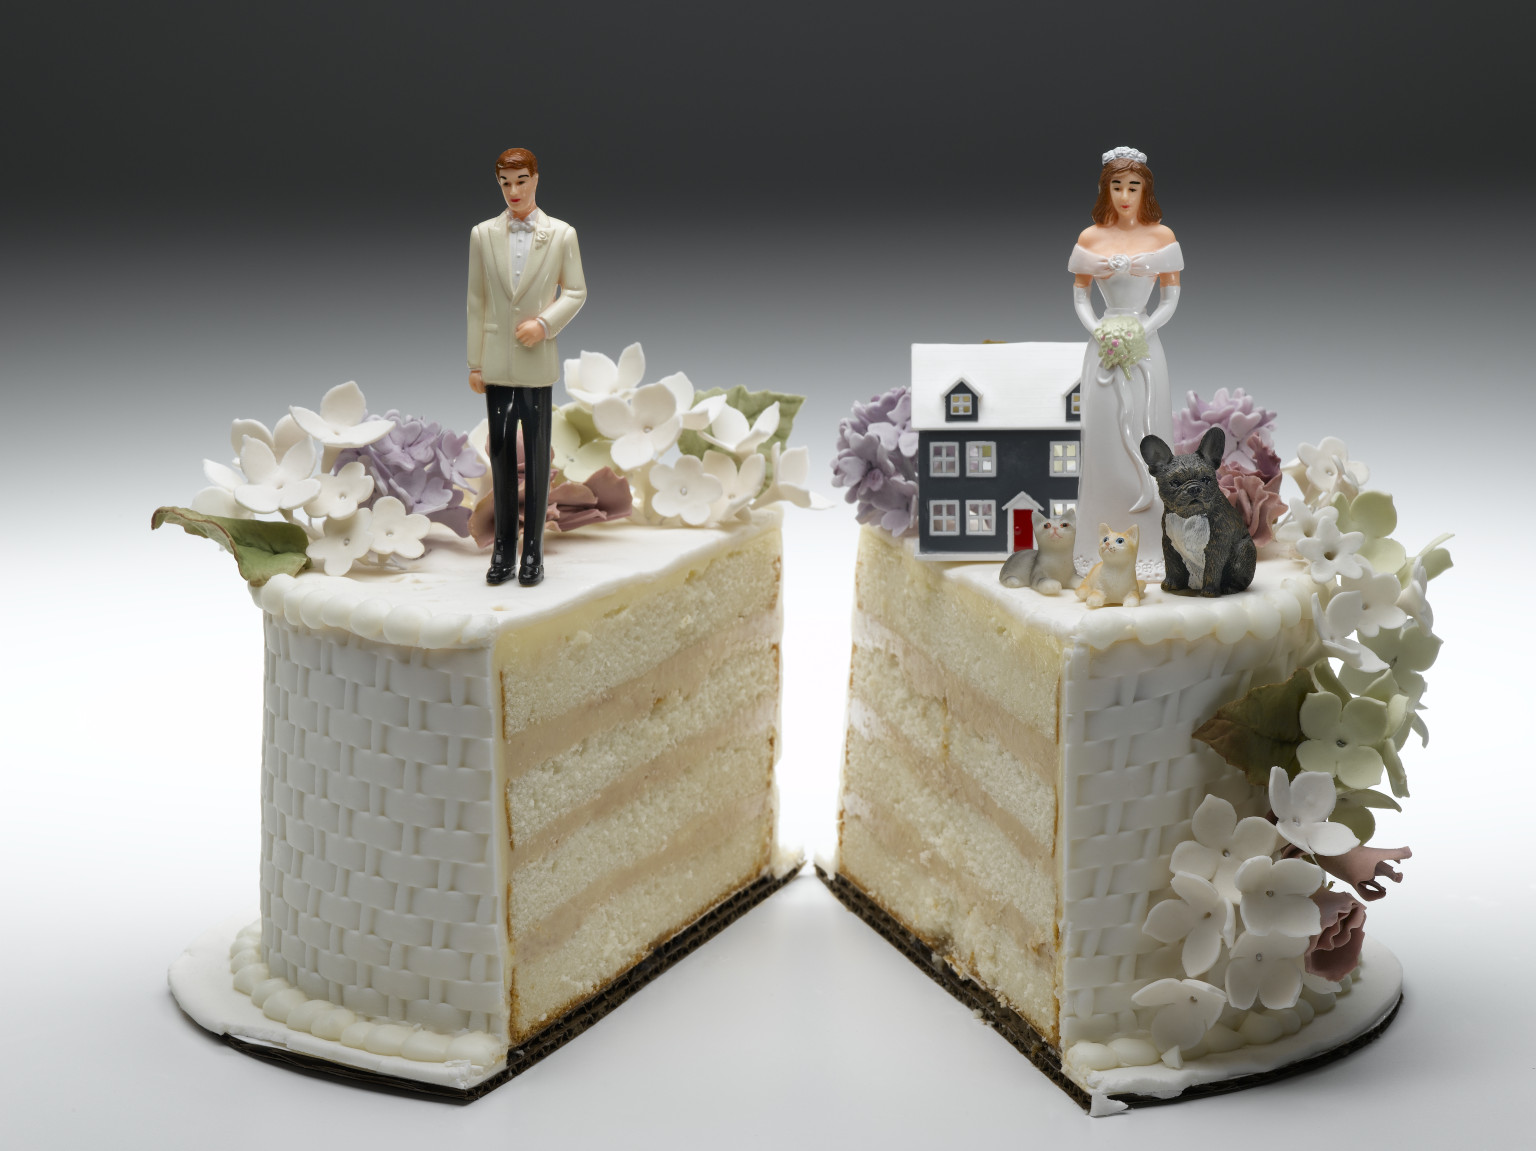 Revenge Is Sweet: 10 Hilarious Divorce Cakes (PICTURES)